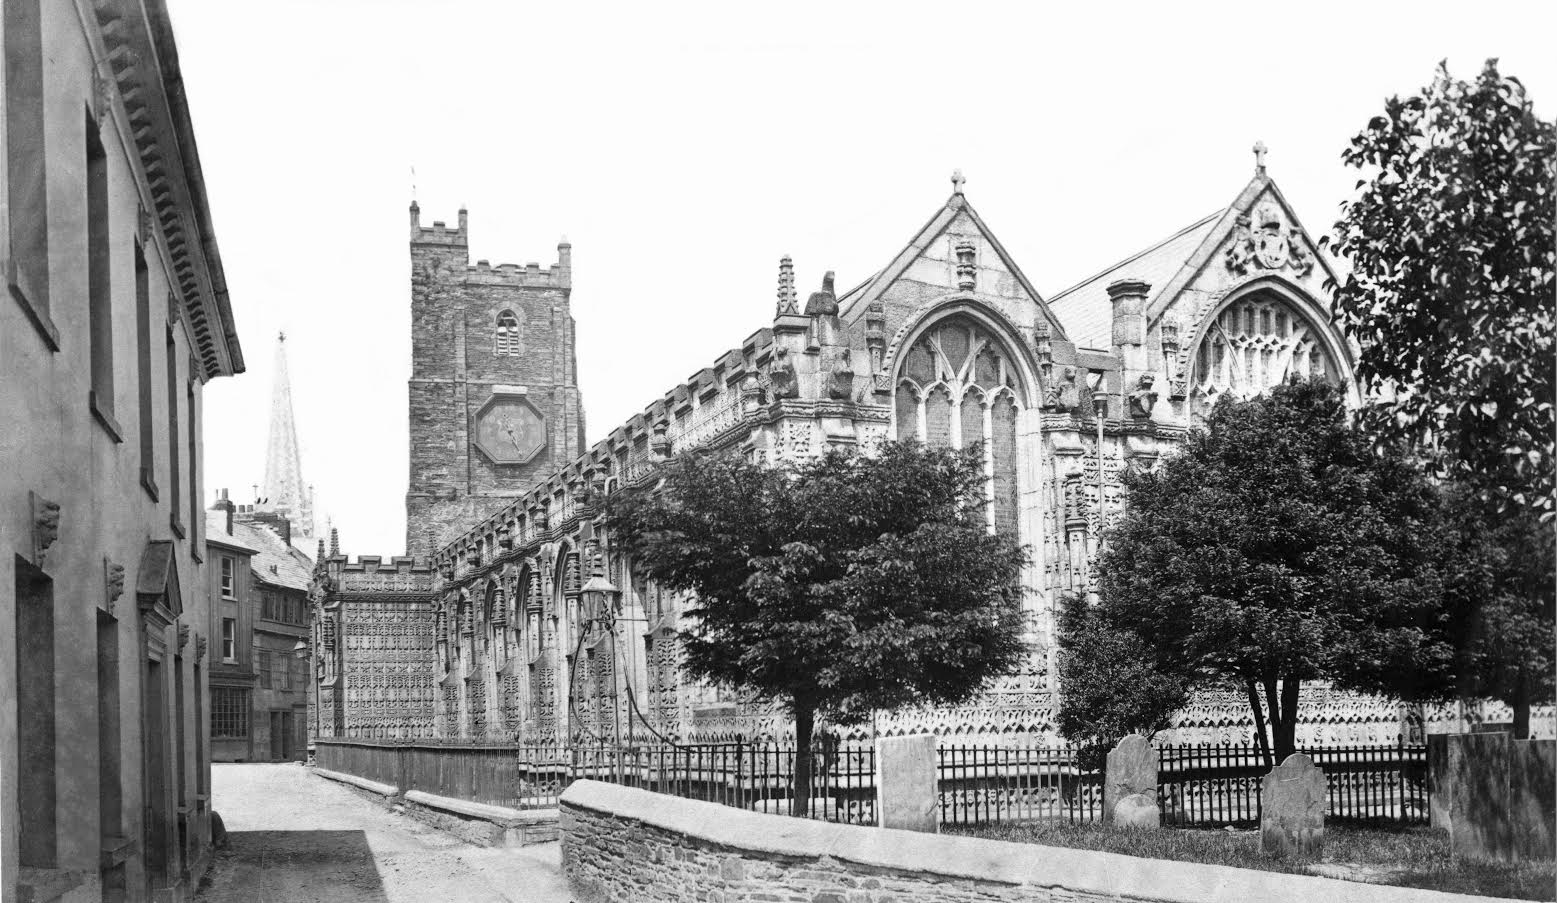 St Marys c.1860. By Henry Hayman